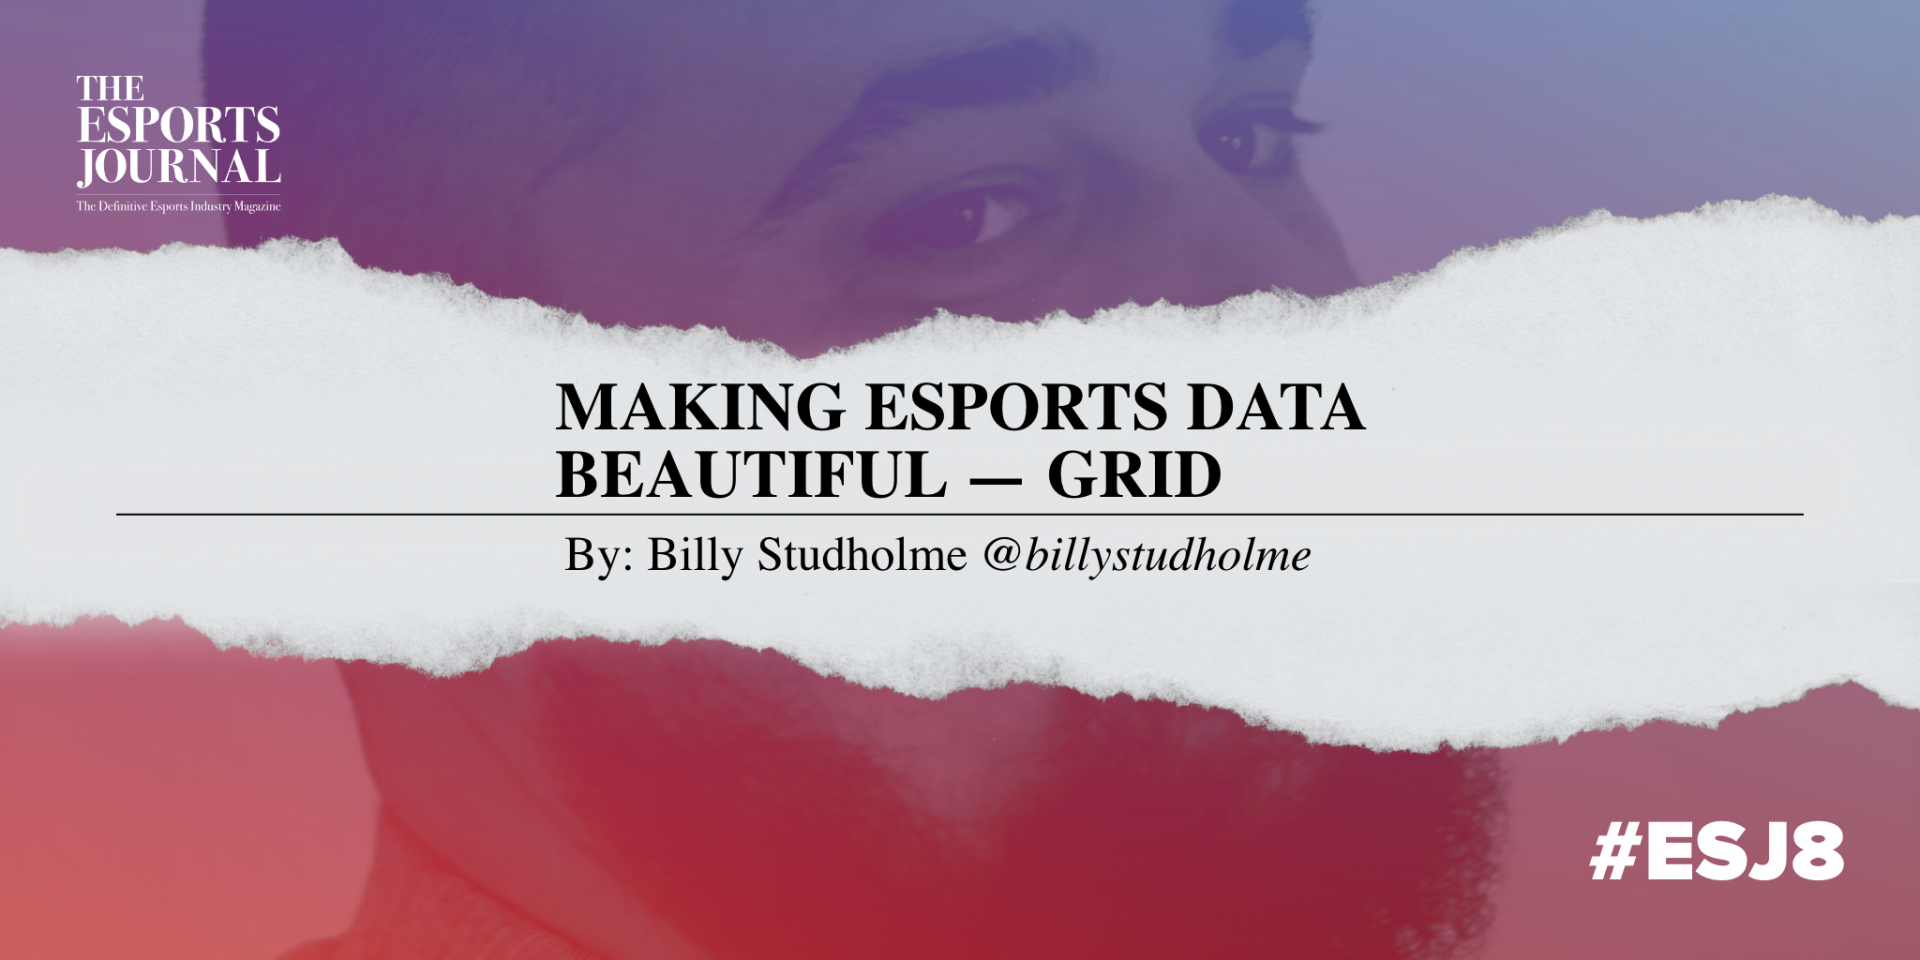 GRID The Esports Journal